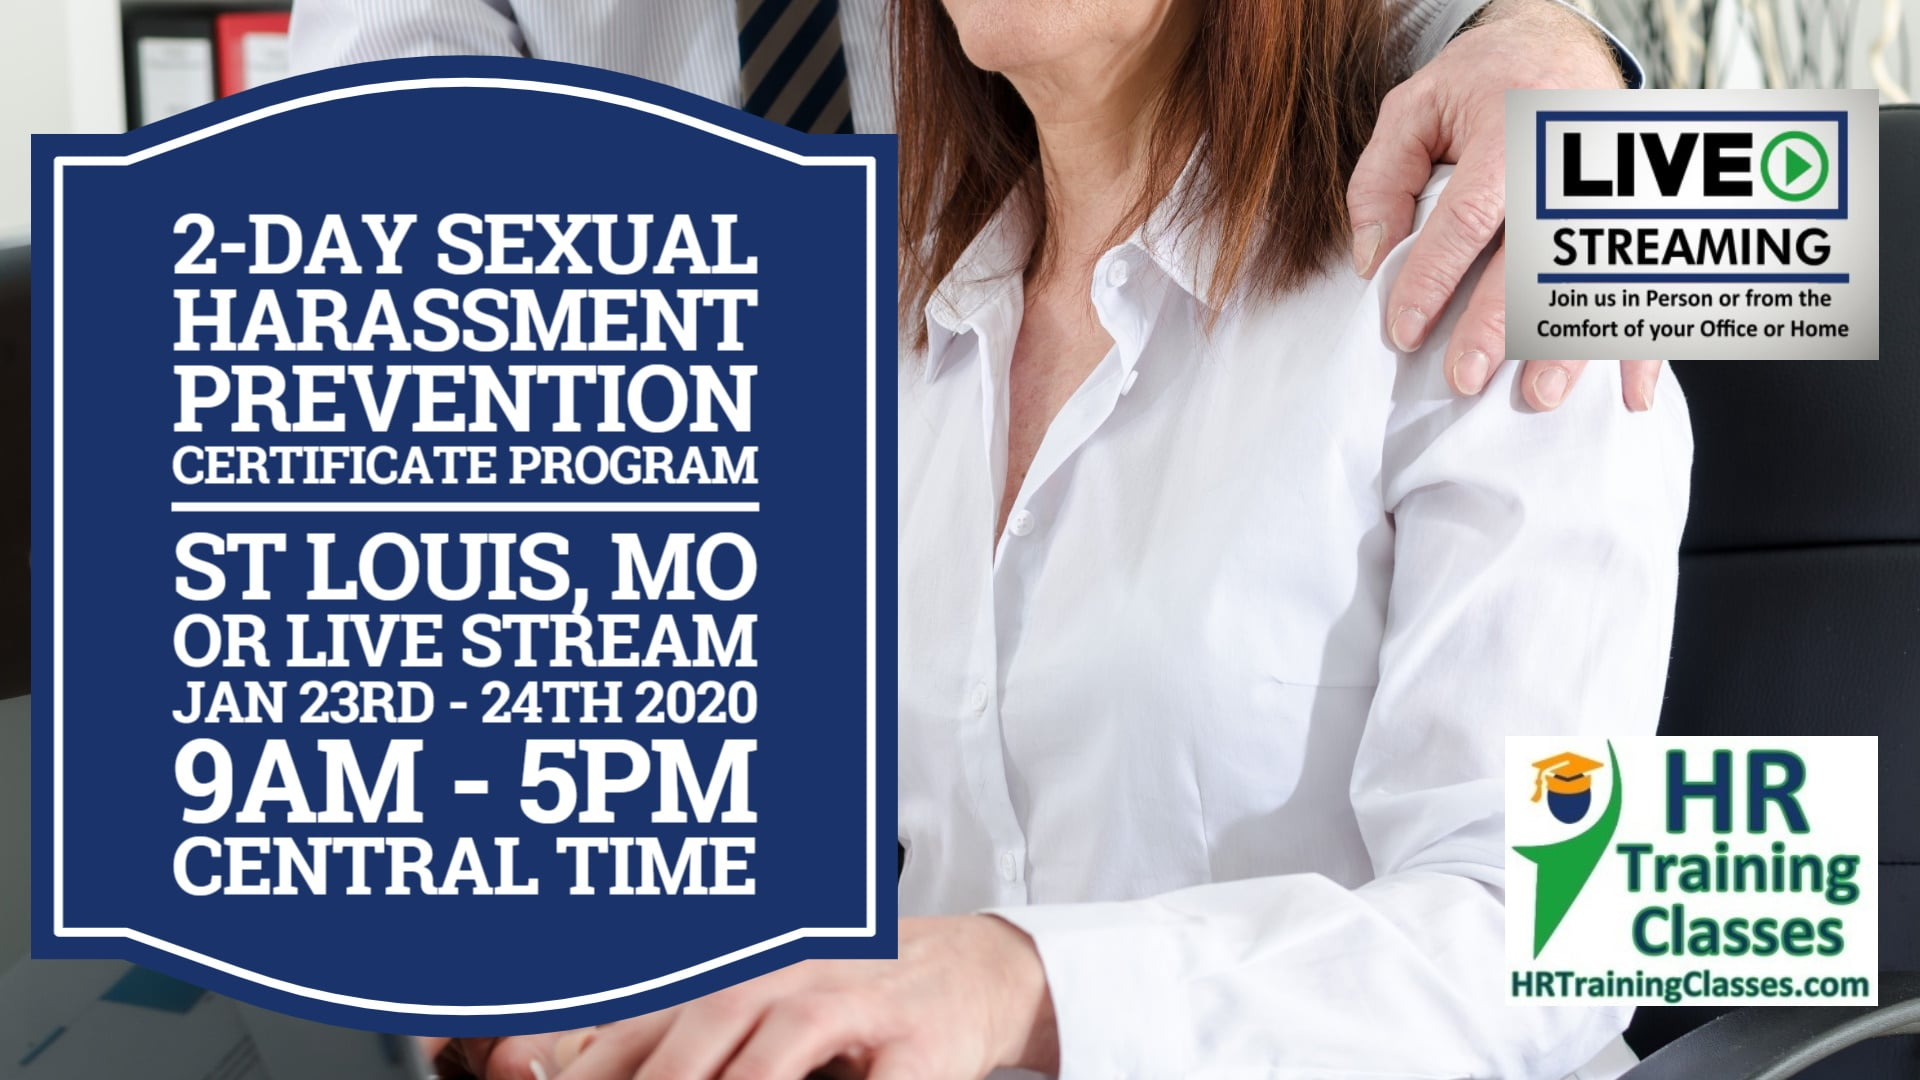 2-Day Sexual Harassment Prevention Certificate Program for HR Professionals (Starts 1/23/2020)